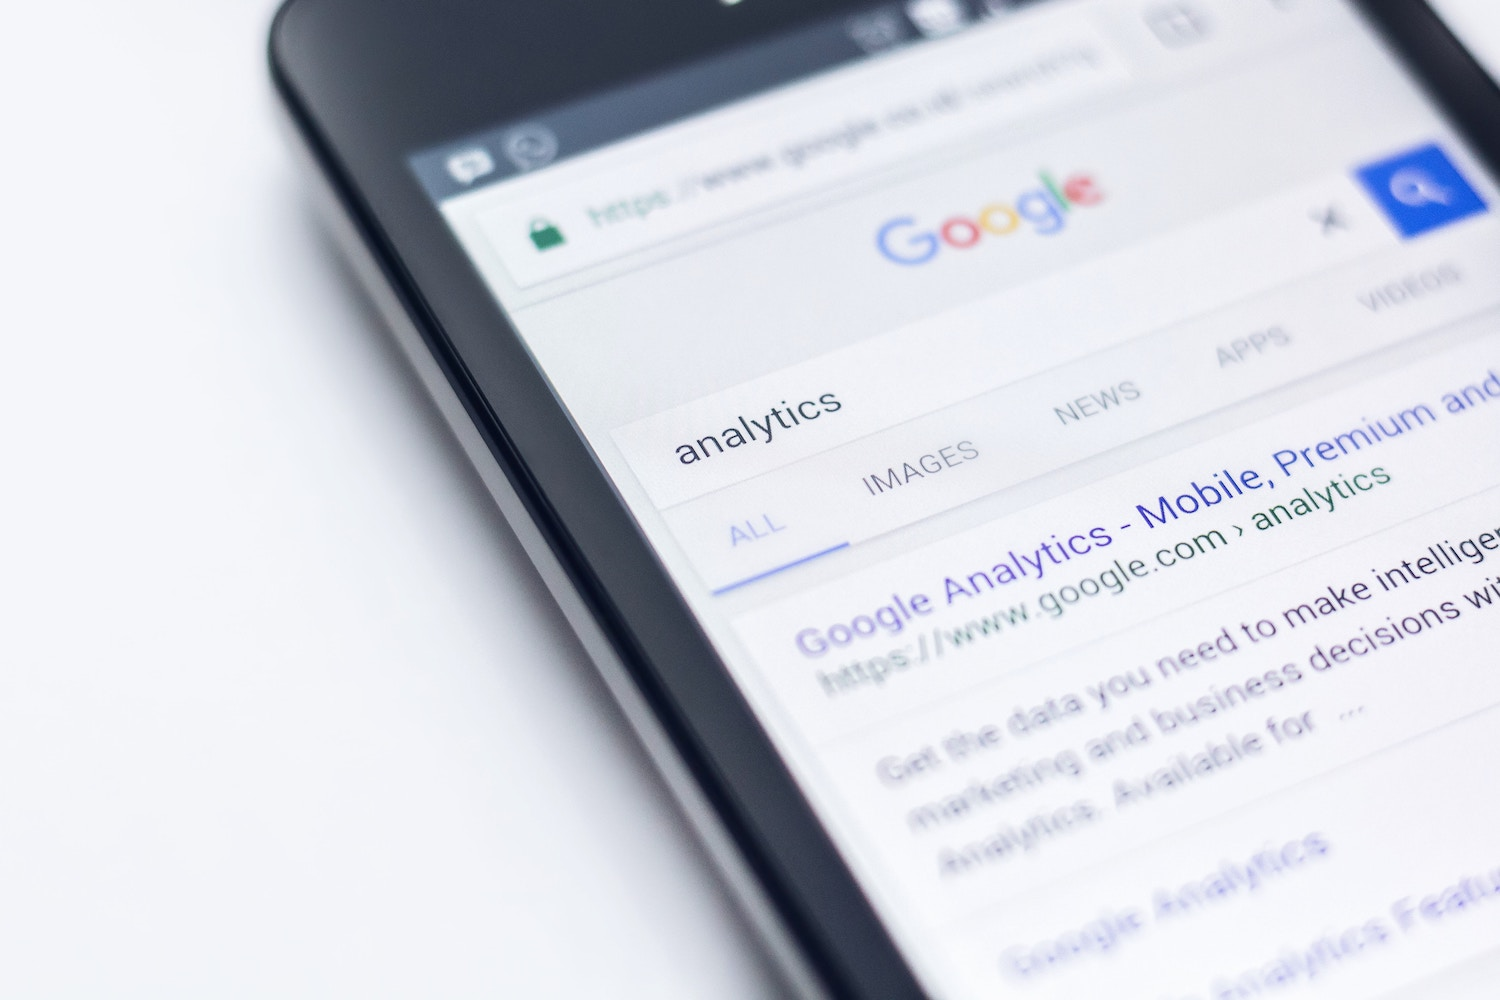 """Google search result for """"analytics"""" on a smartphone"""